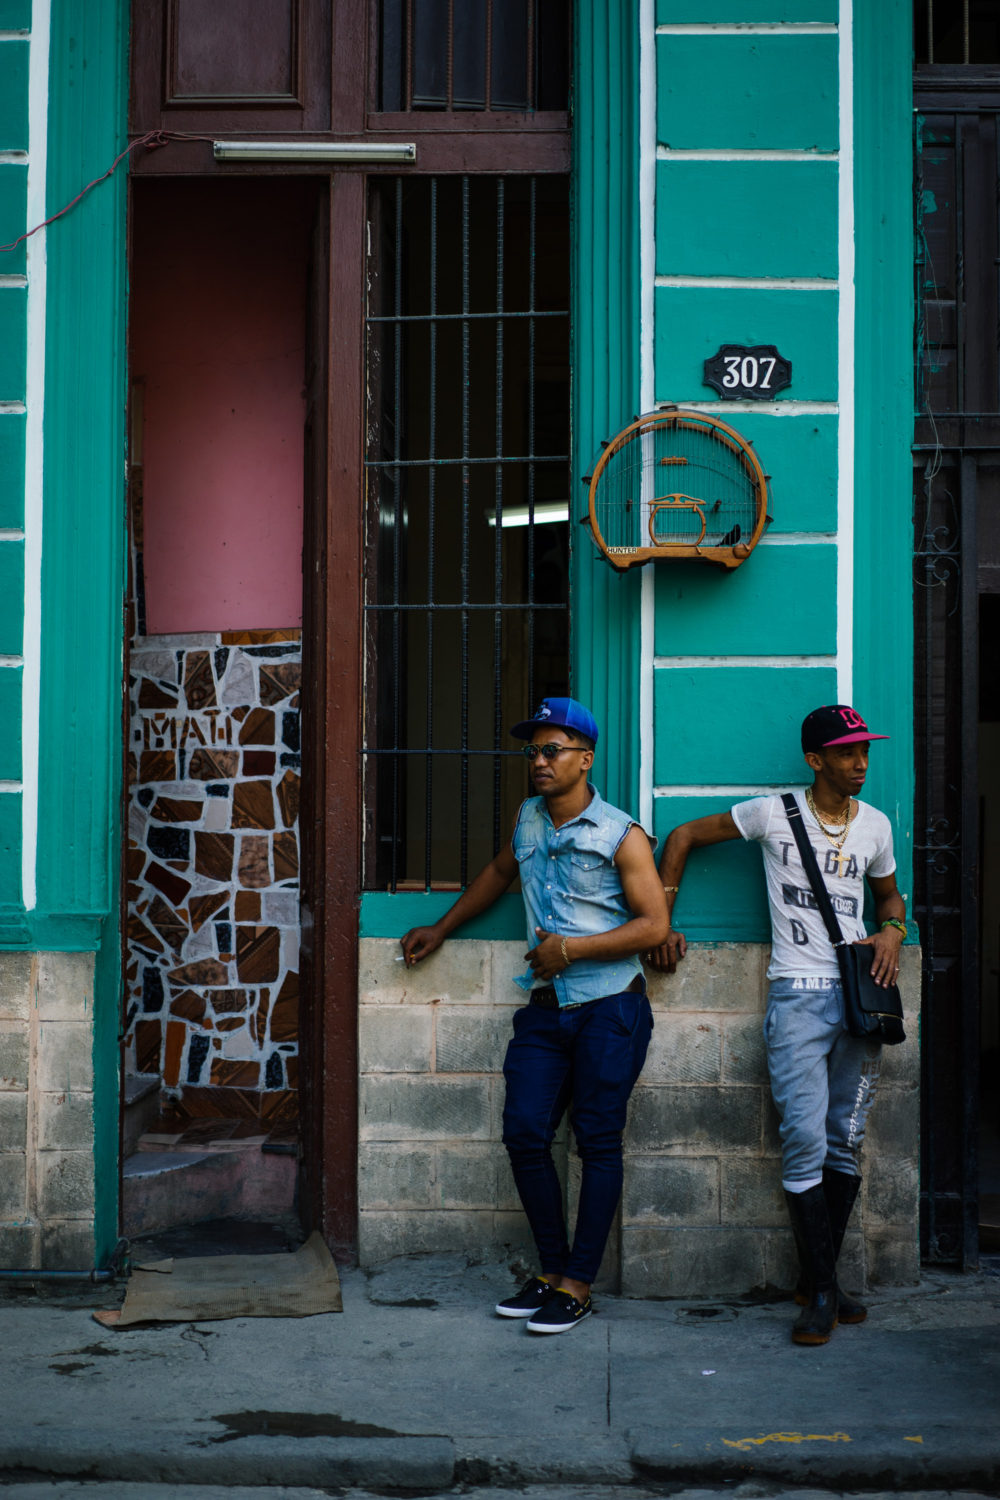 la-habana-dante-vincent-photography-61